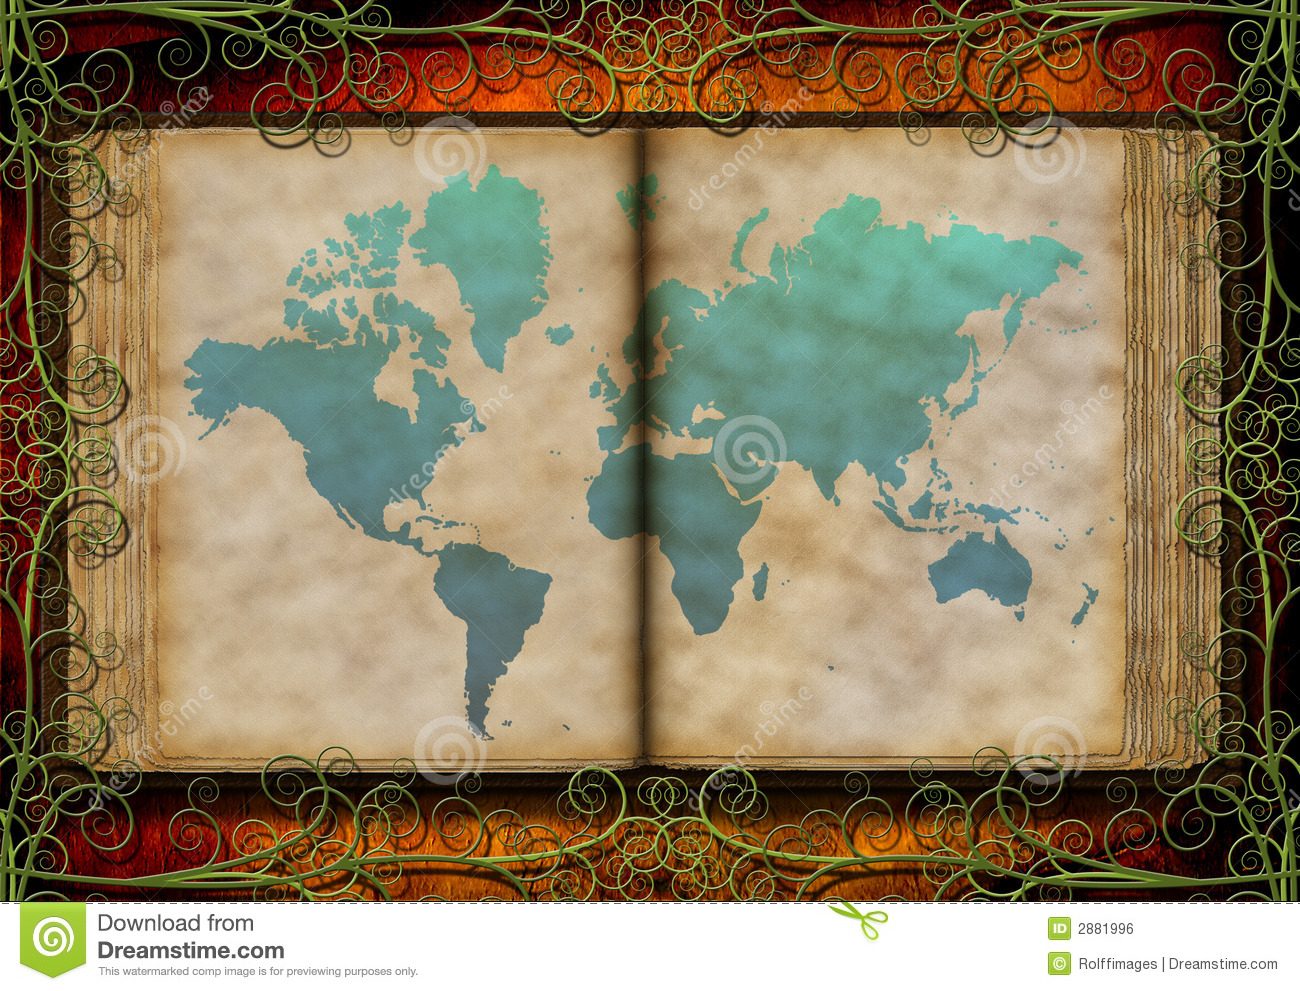 World map on antique book stock illustration illustration of beauty world map on antique book gumiabroncs Image collections